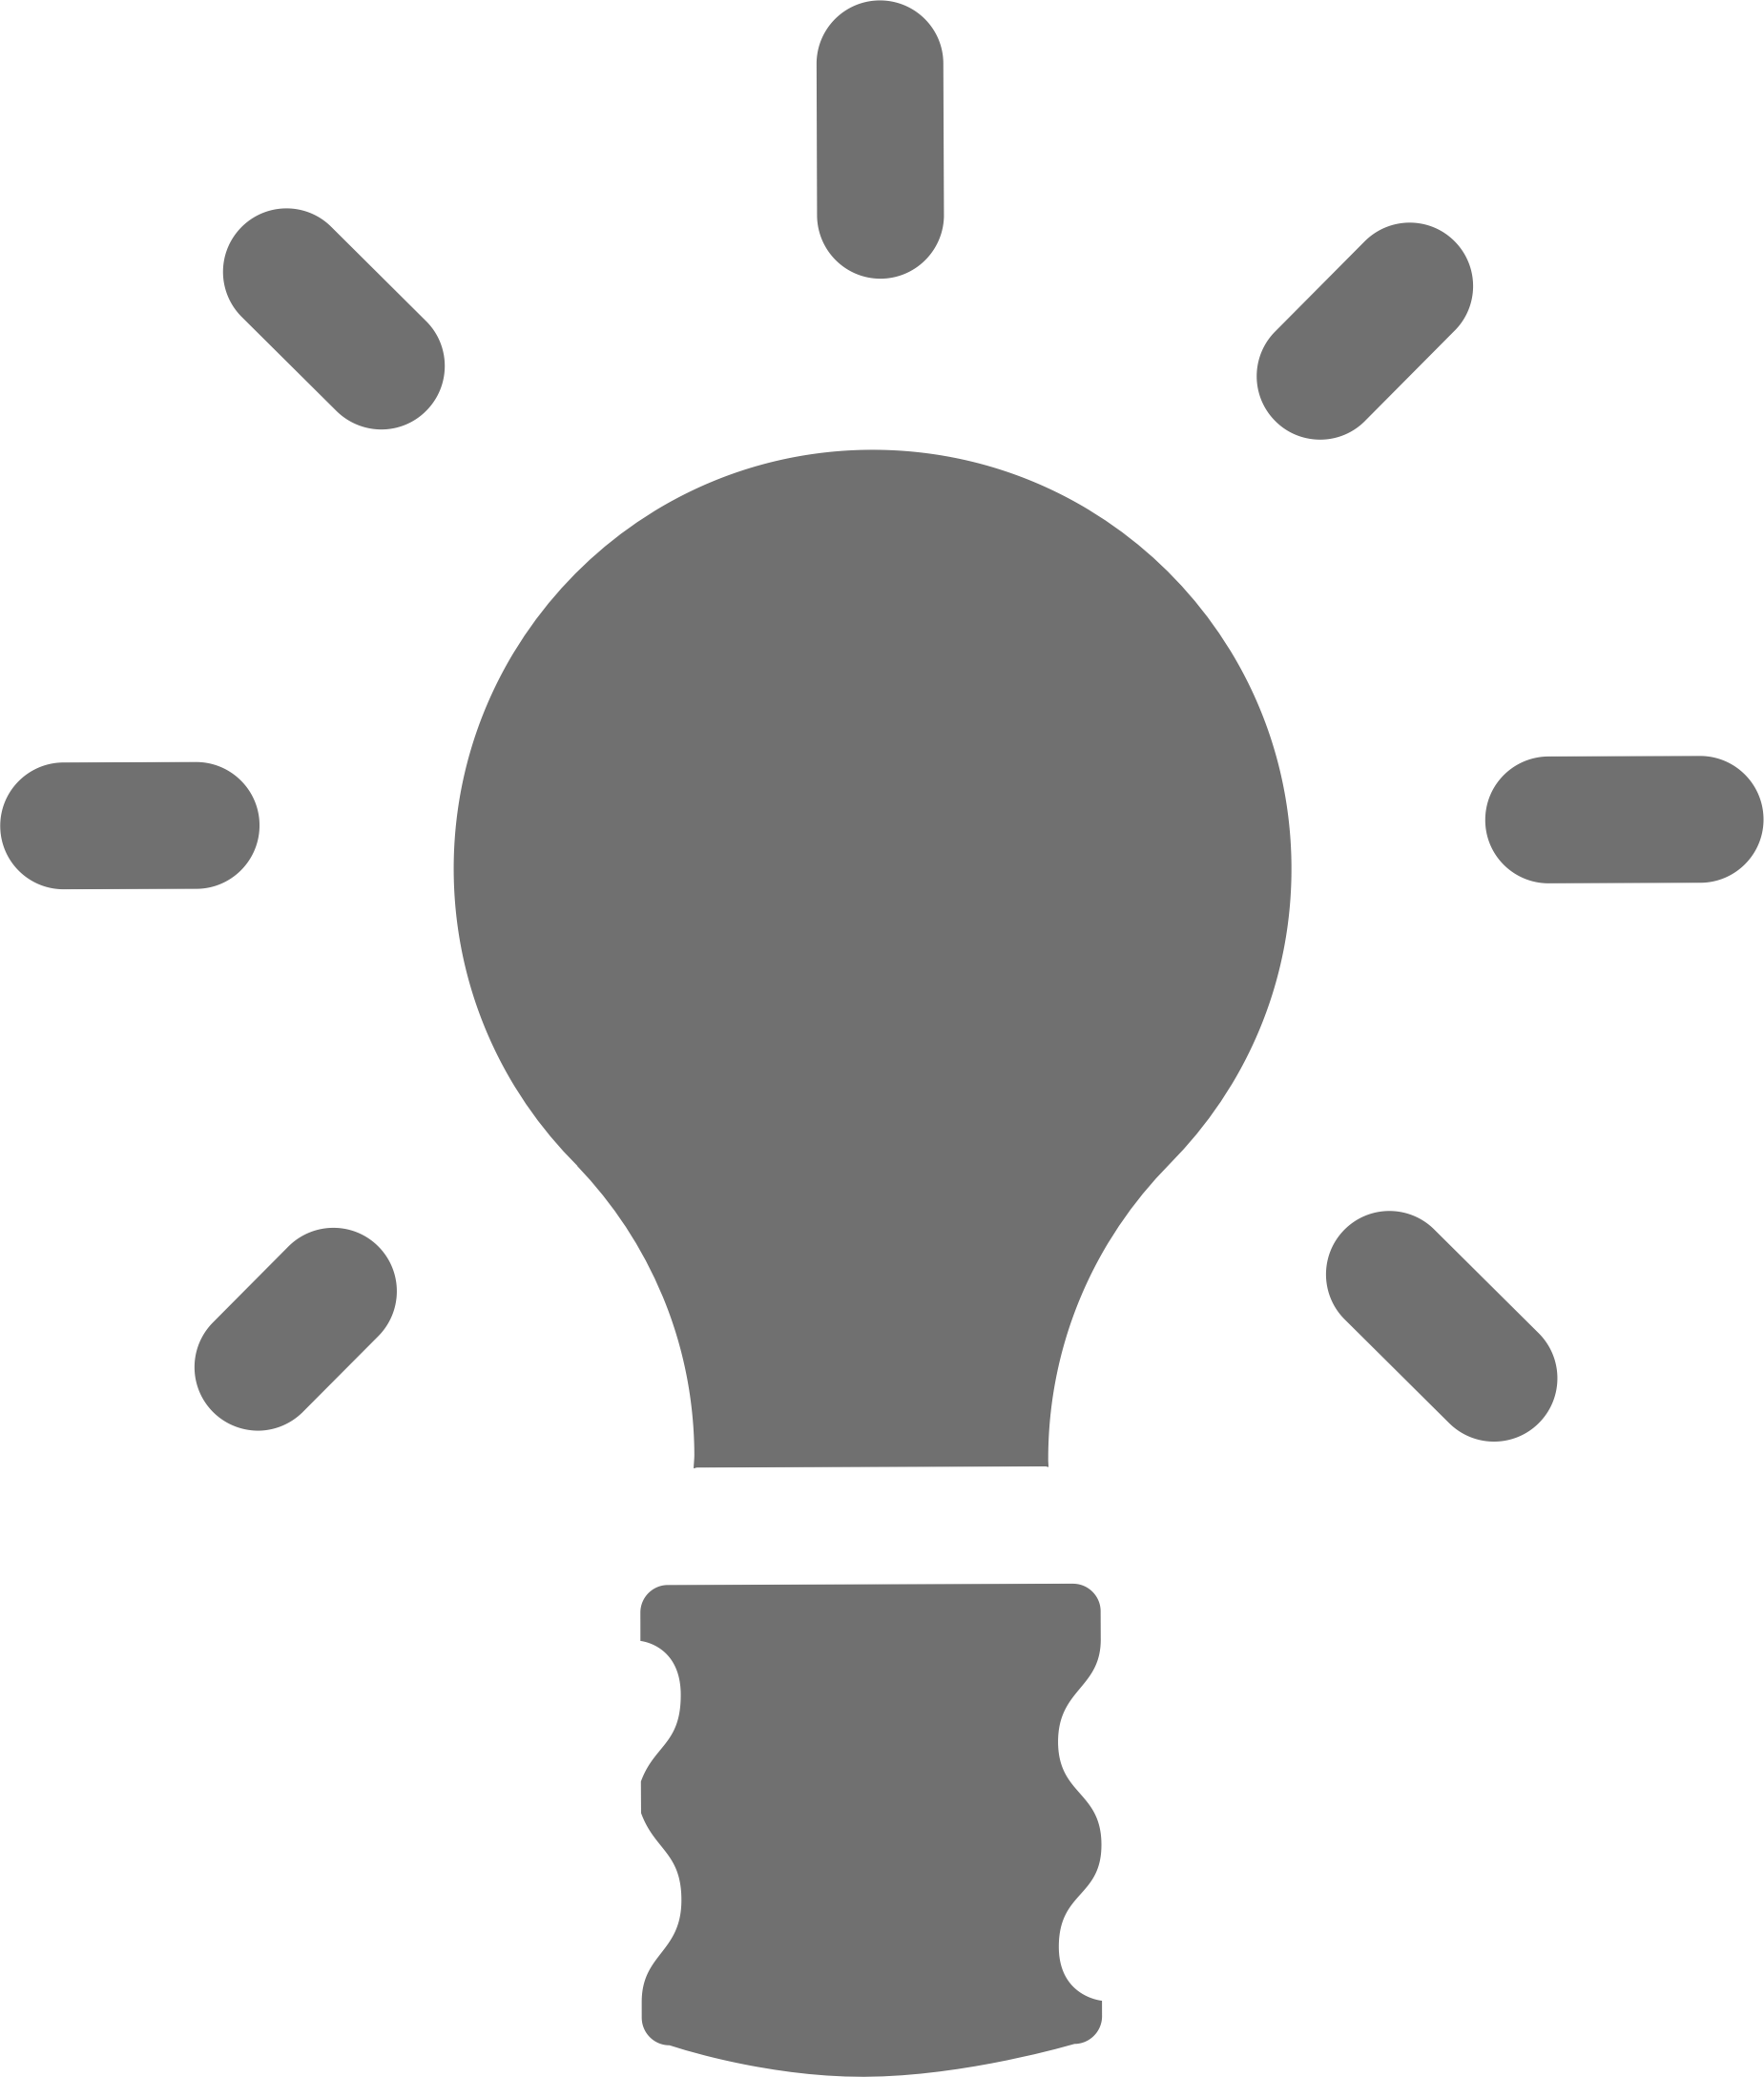 BIG IMAGE (PNG) - Lamp PNG Black And White